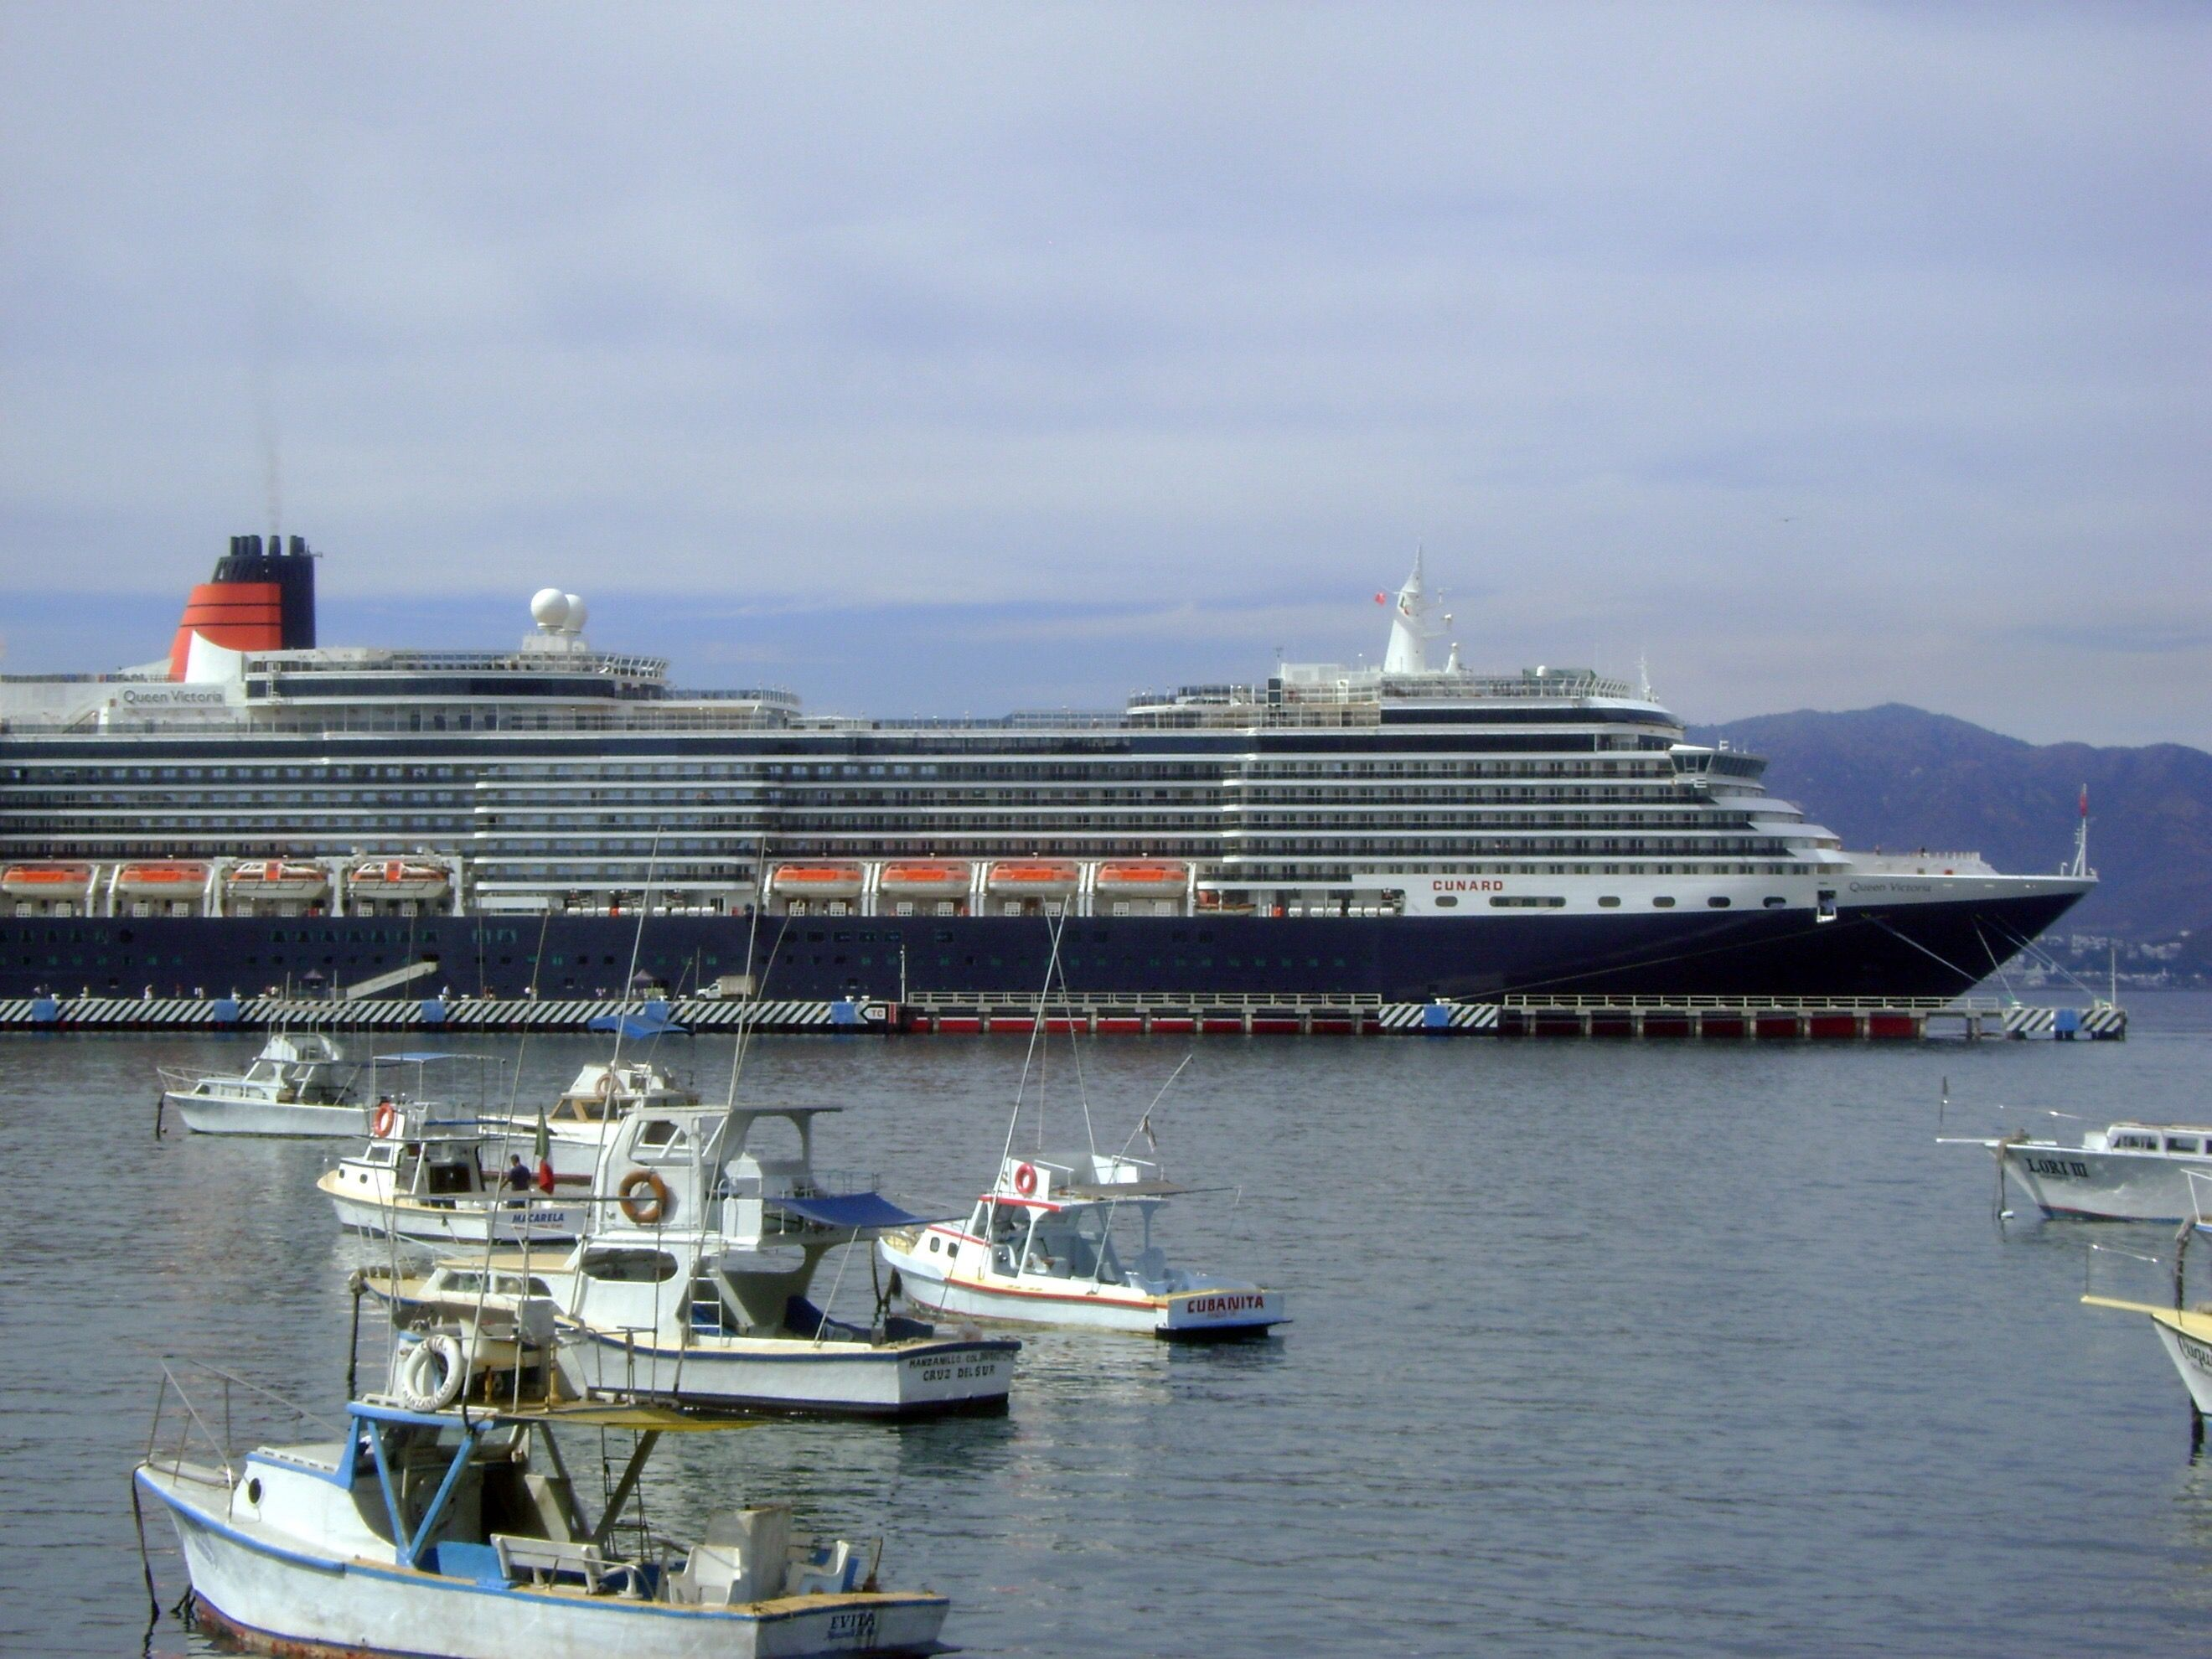 MS Queen Victoria QV Is A Cruise Ship Operated By The Cunard - Tracking queen victoria cruise ship